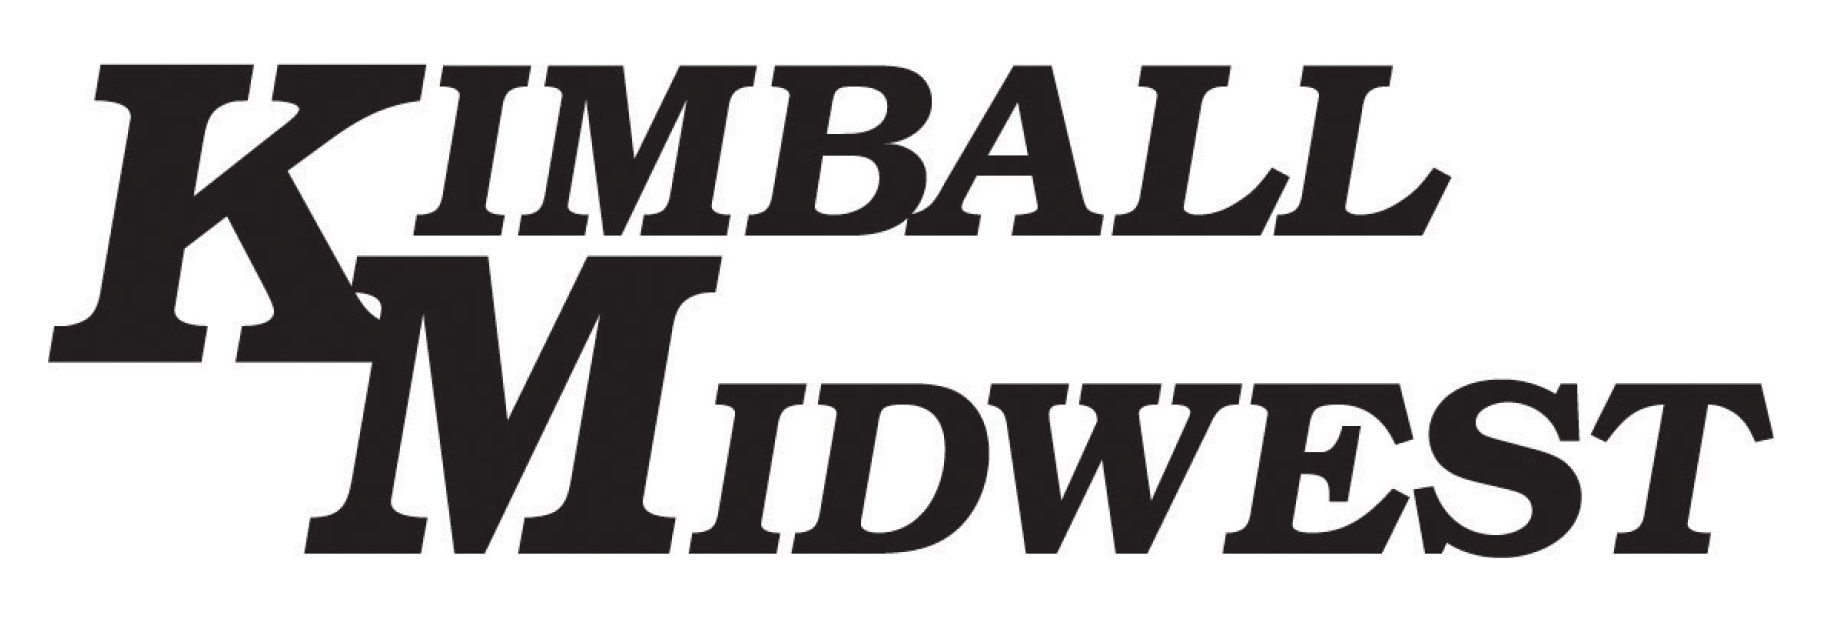 Kimball Midwest - Dave McCurdy